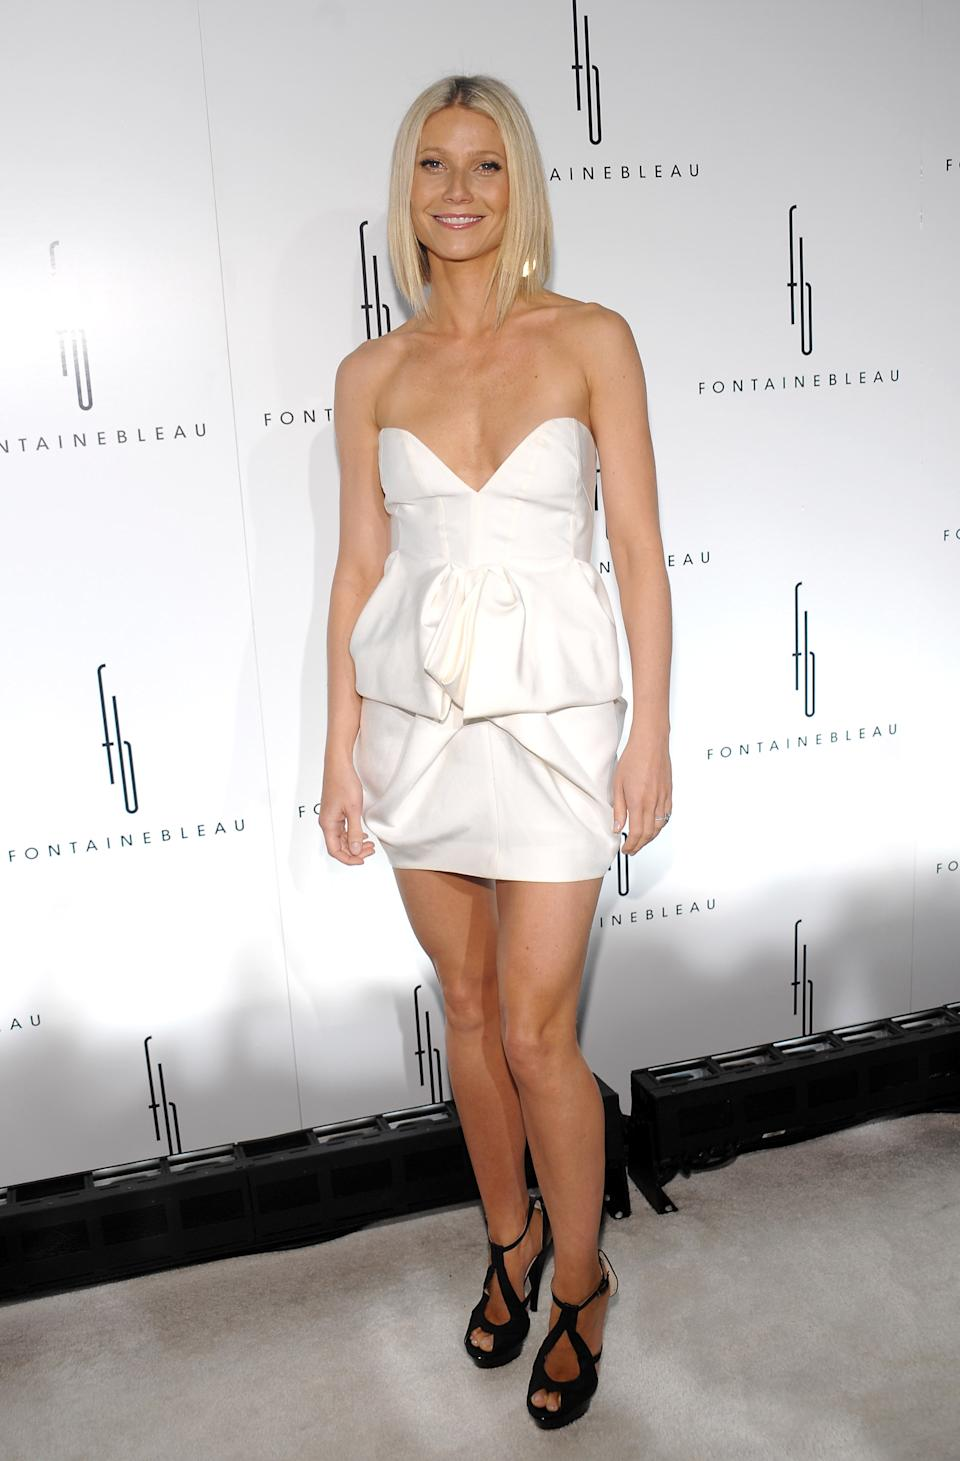 Actress Gwyneth Paltrow attends the Fontainebleau Miami Beach Hotel grand opening party on Friday, Nov. 14, 2008 in Miami Beach, Fla. (AP Photo/Evan Agostini)